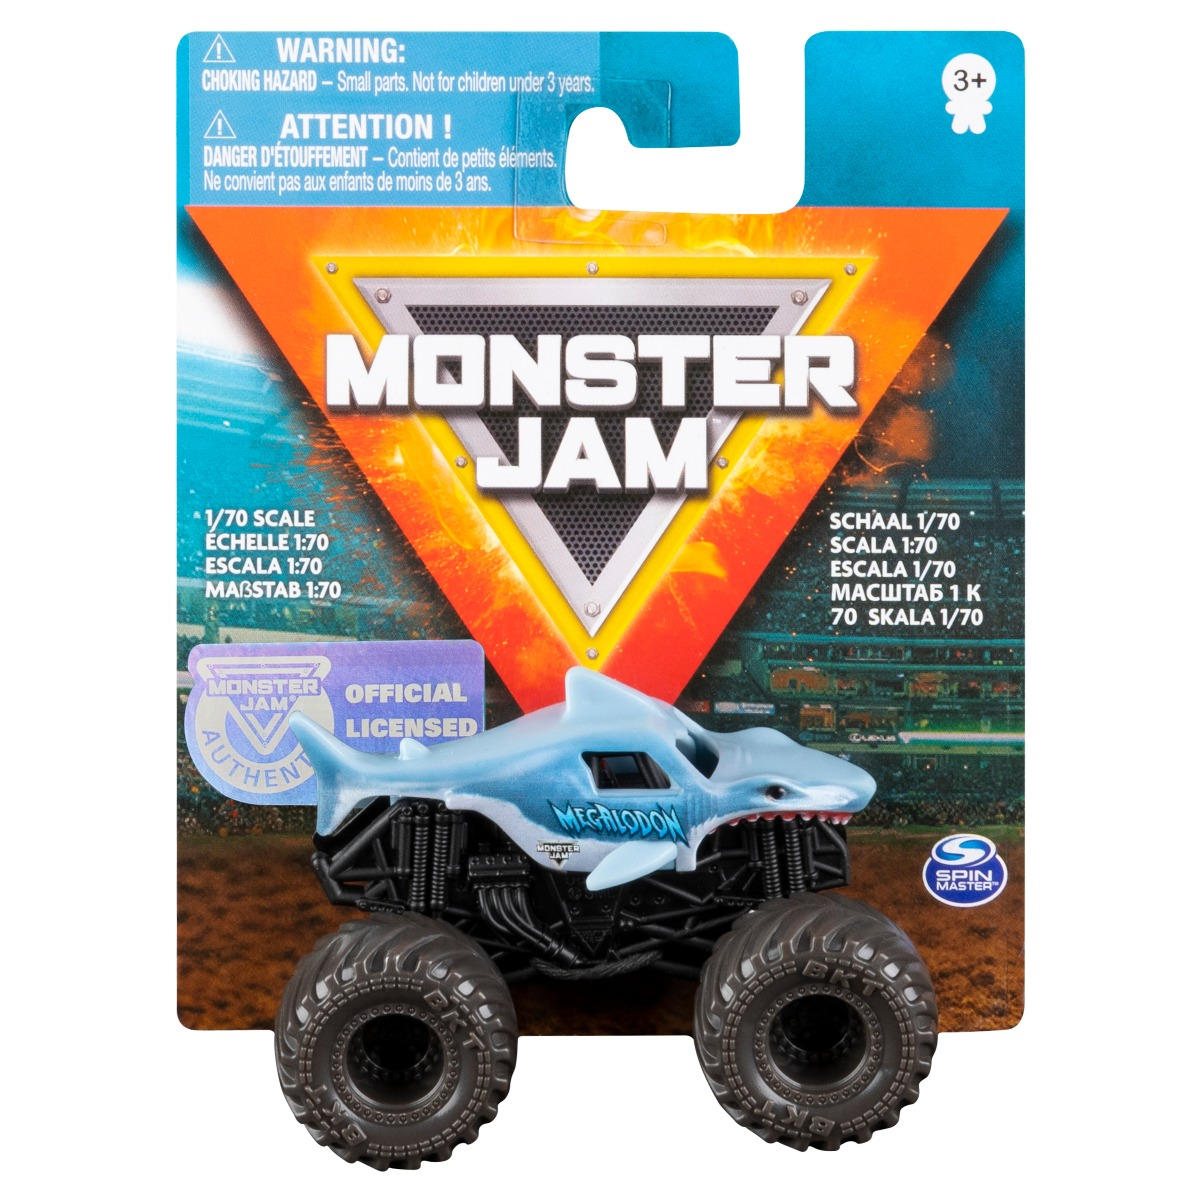 Masinuta Monster Jam, Megalodon Trucks, 20108580